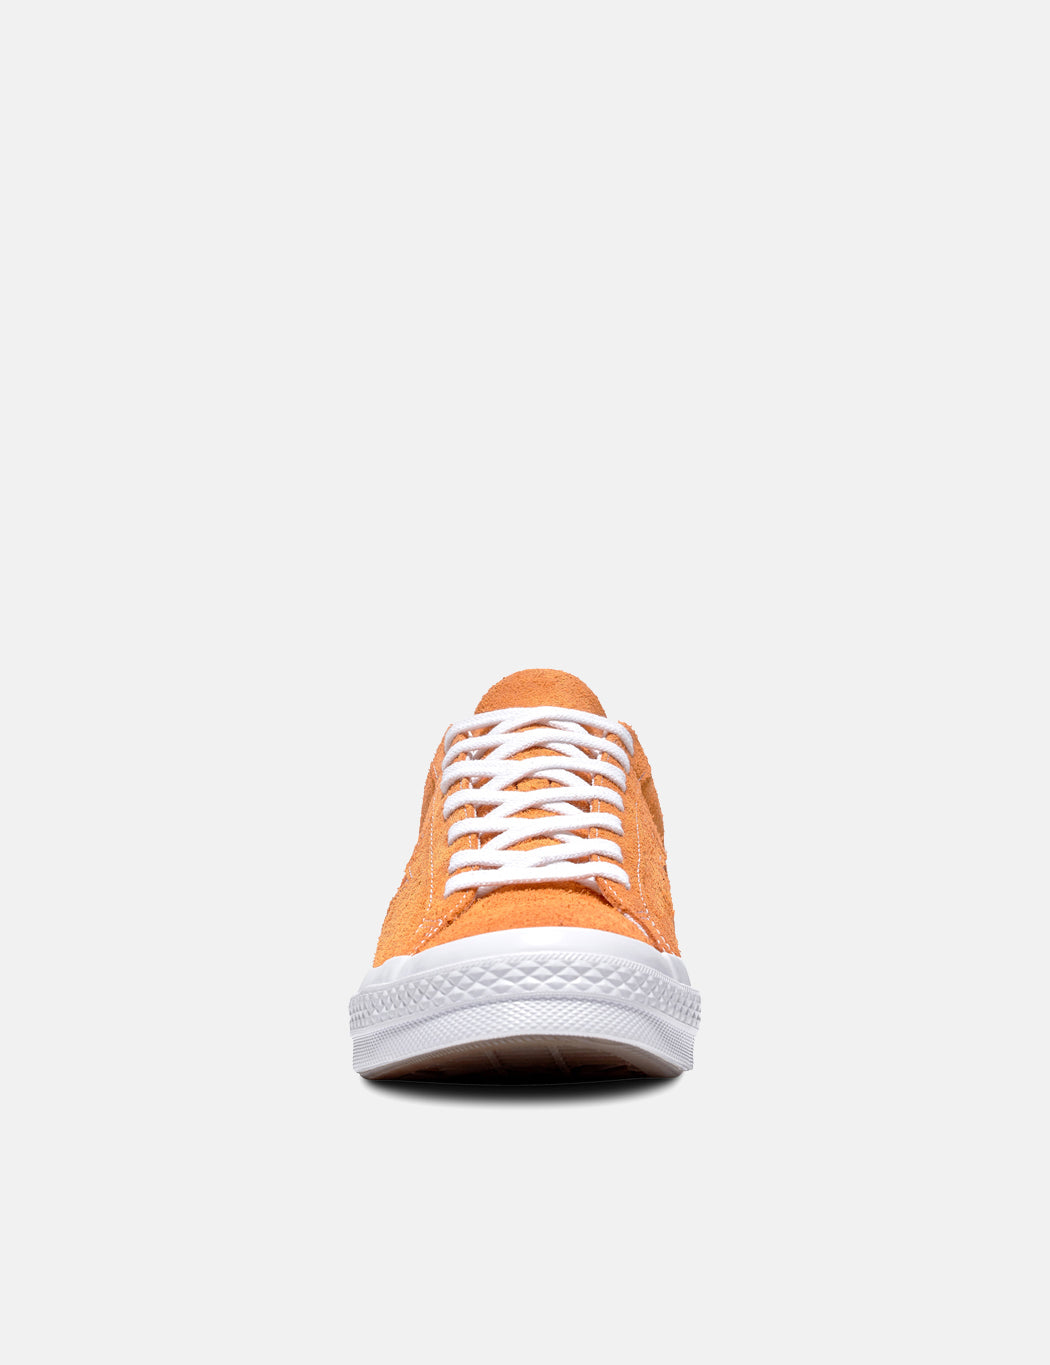 Converse One Star Ox Low Suede (161574C) - Bold Mandarin Orange/White/White